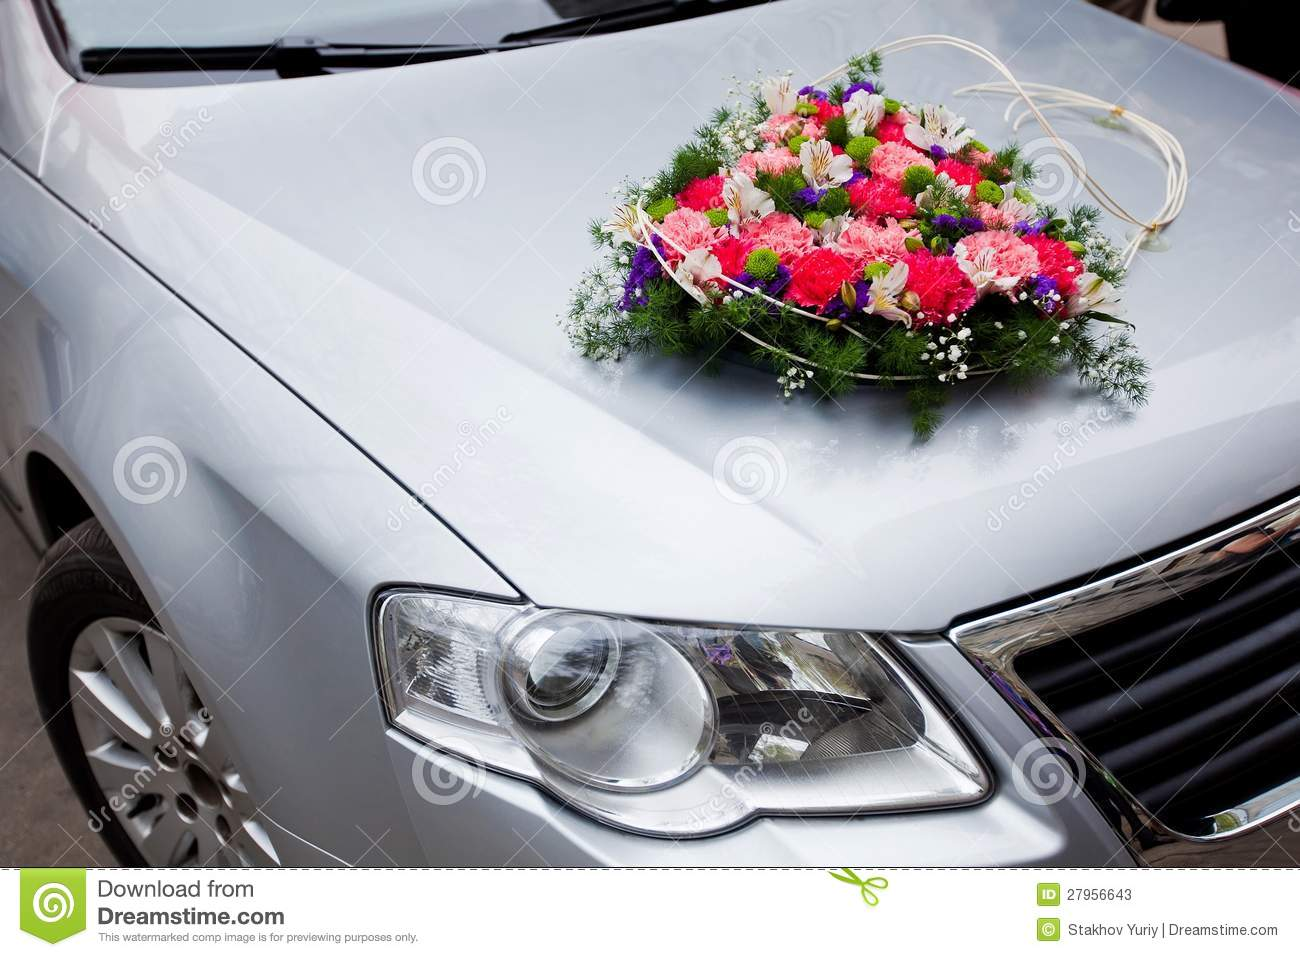 Car decoration for wedding flower the for Automobile decoration